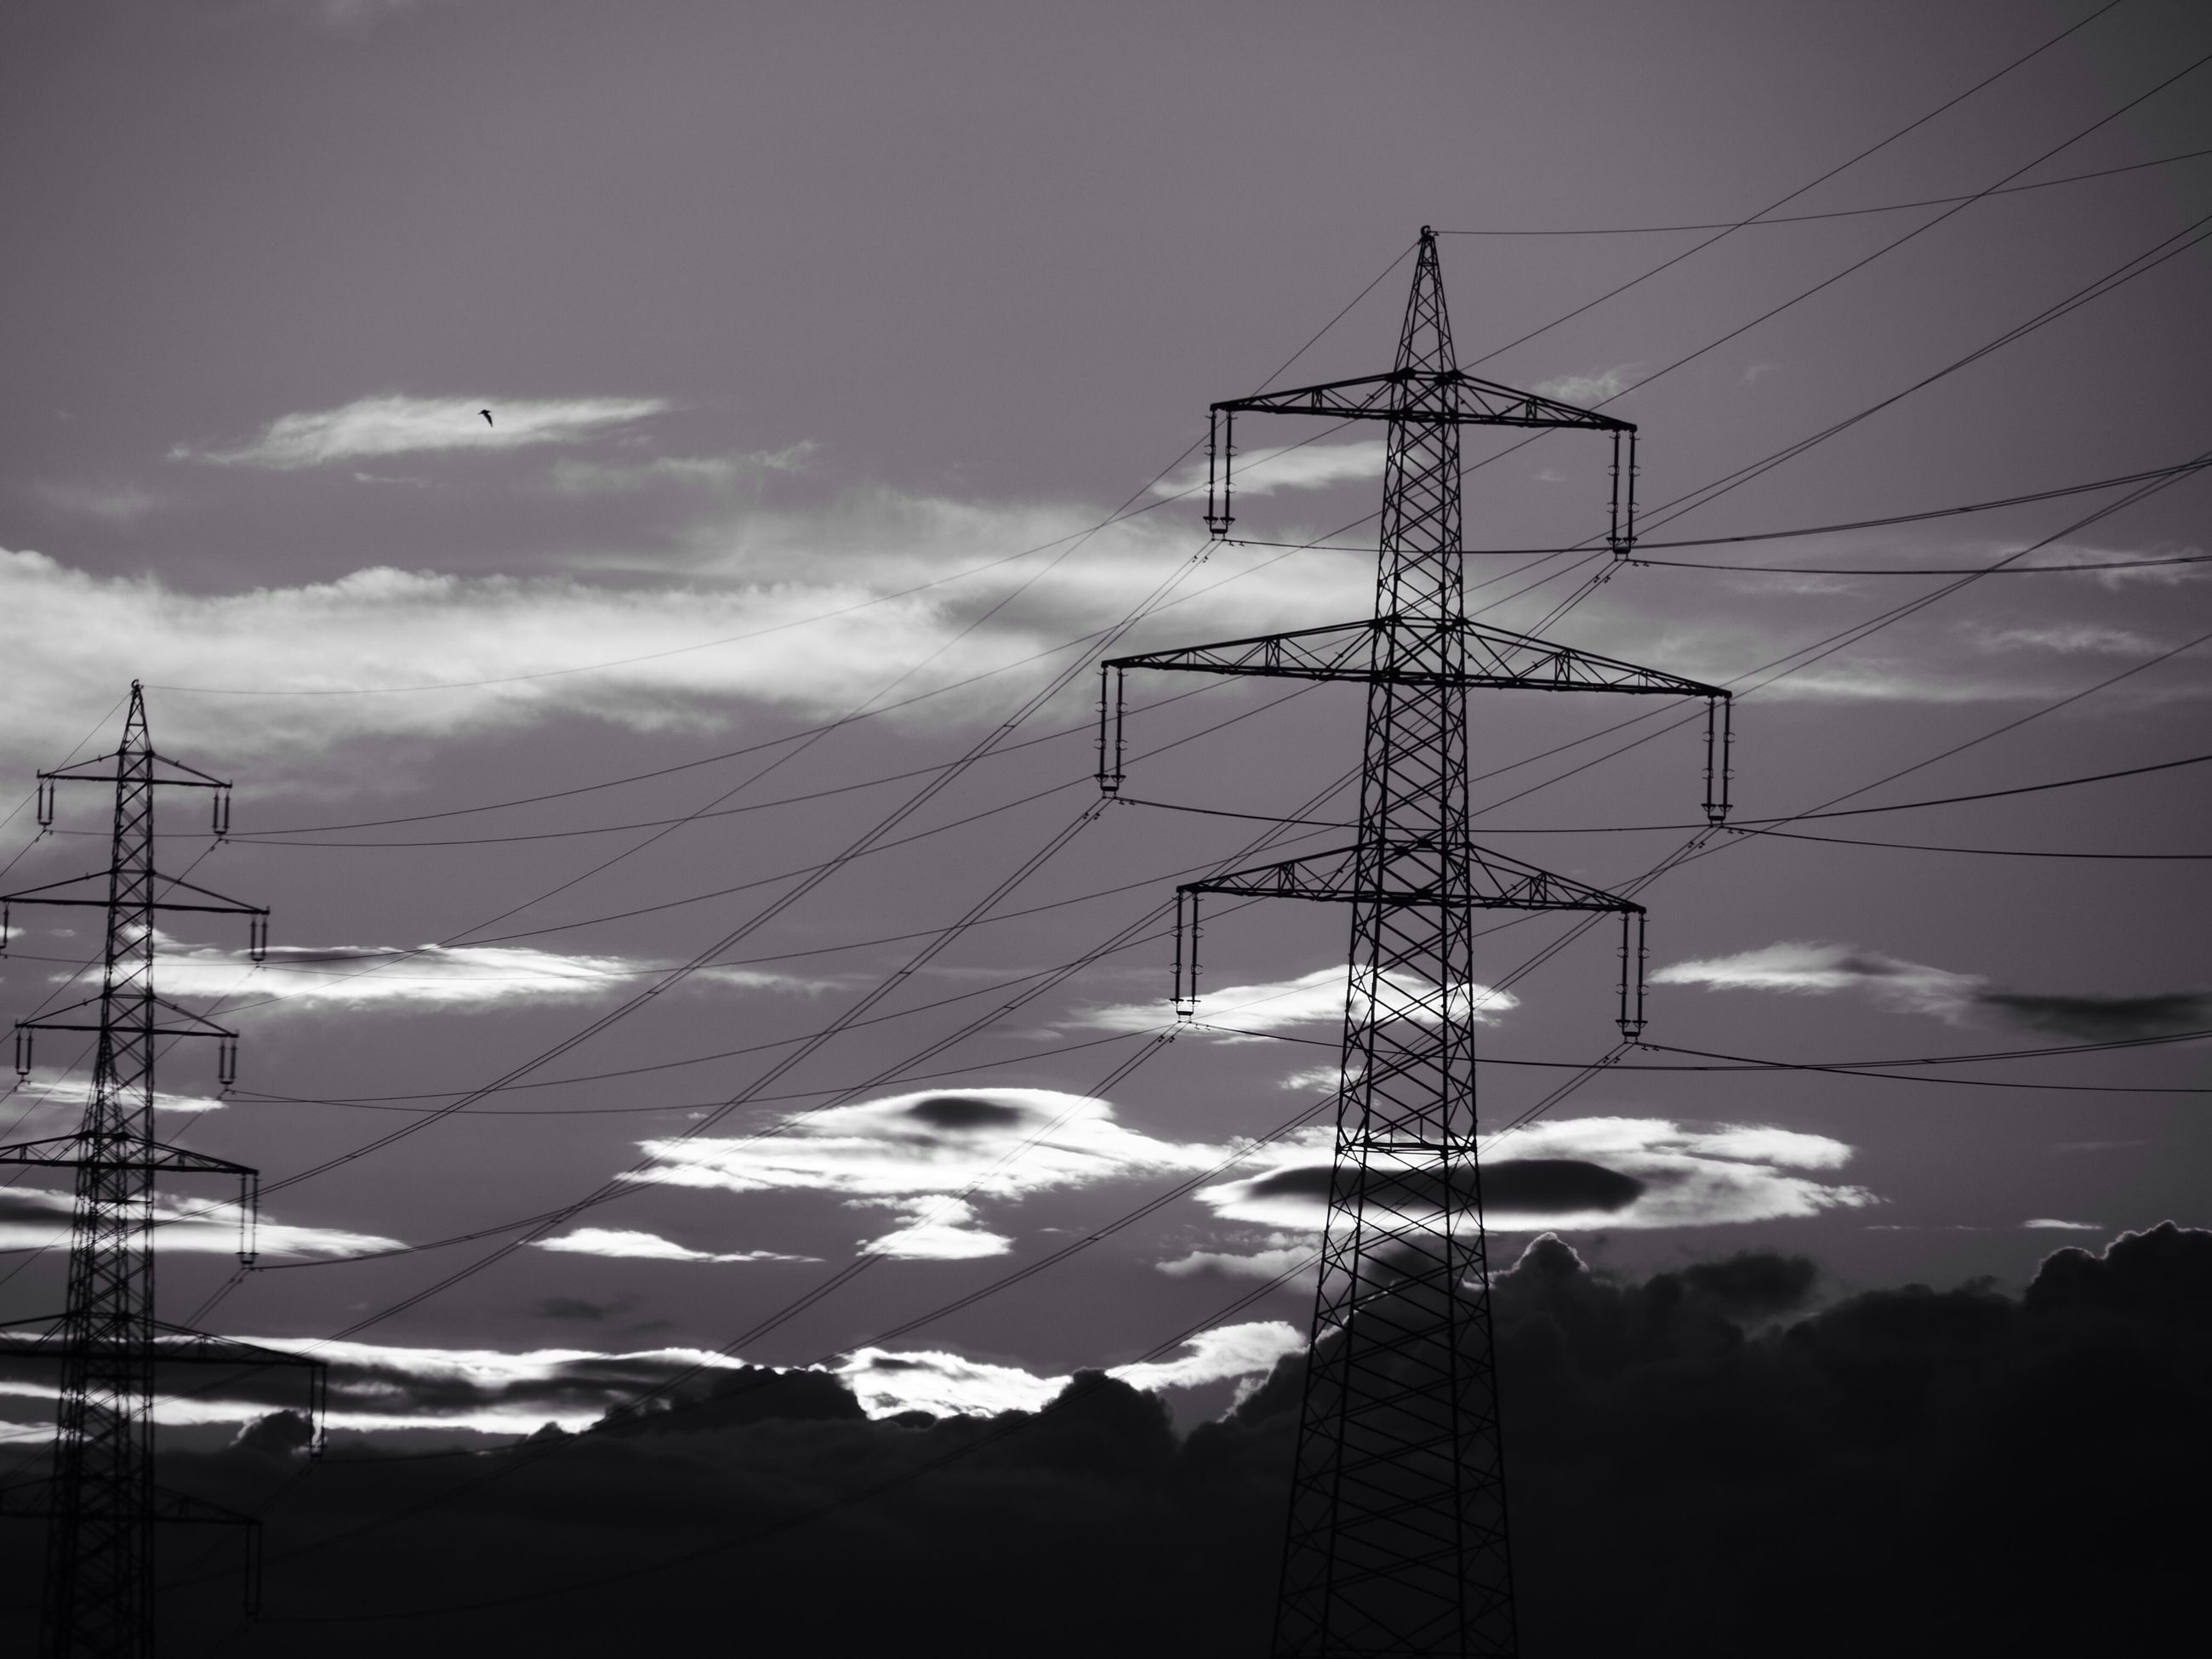 electricity pylon, power line, electricity, power supply, fuel and power generation, technology, cable, connection, sky, low angle view, silhouette, cloud - sky, power cable, electricity tower, outdoors, no people, complexity, dusk, nature, telephone line